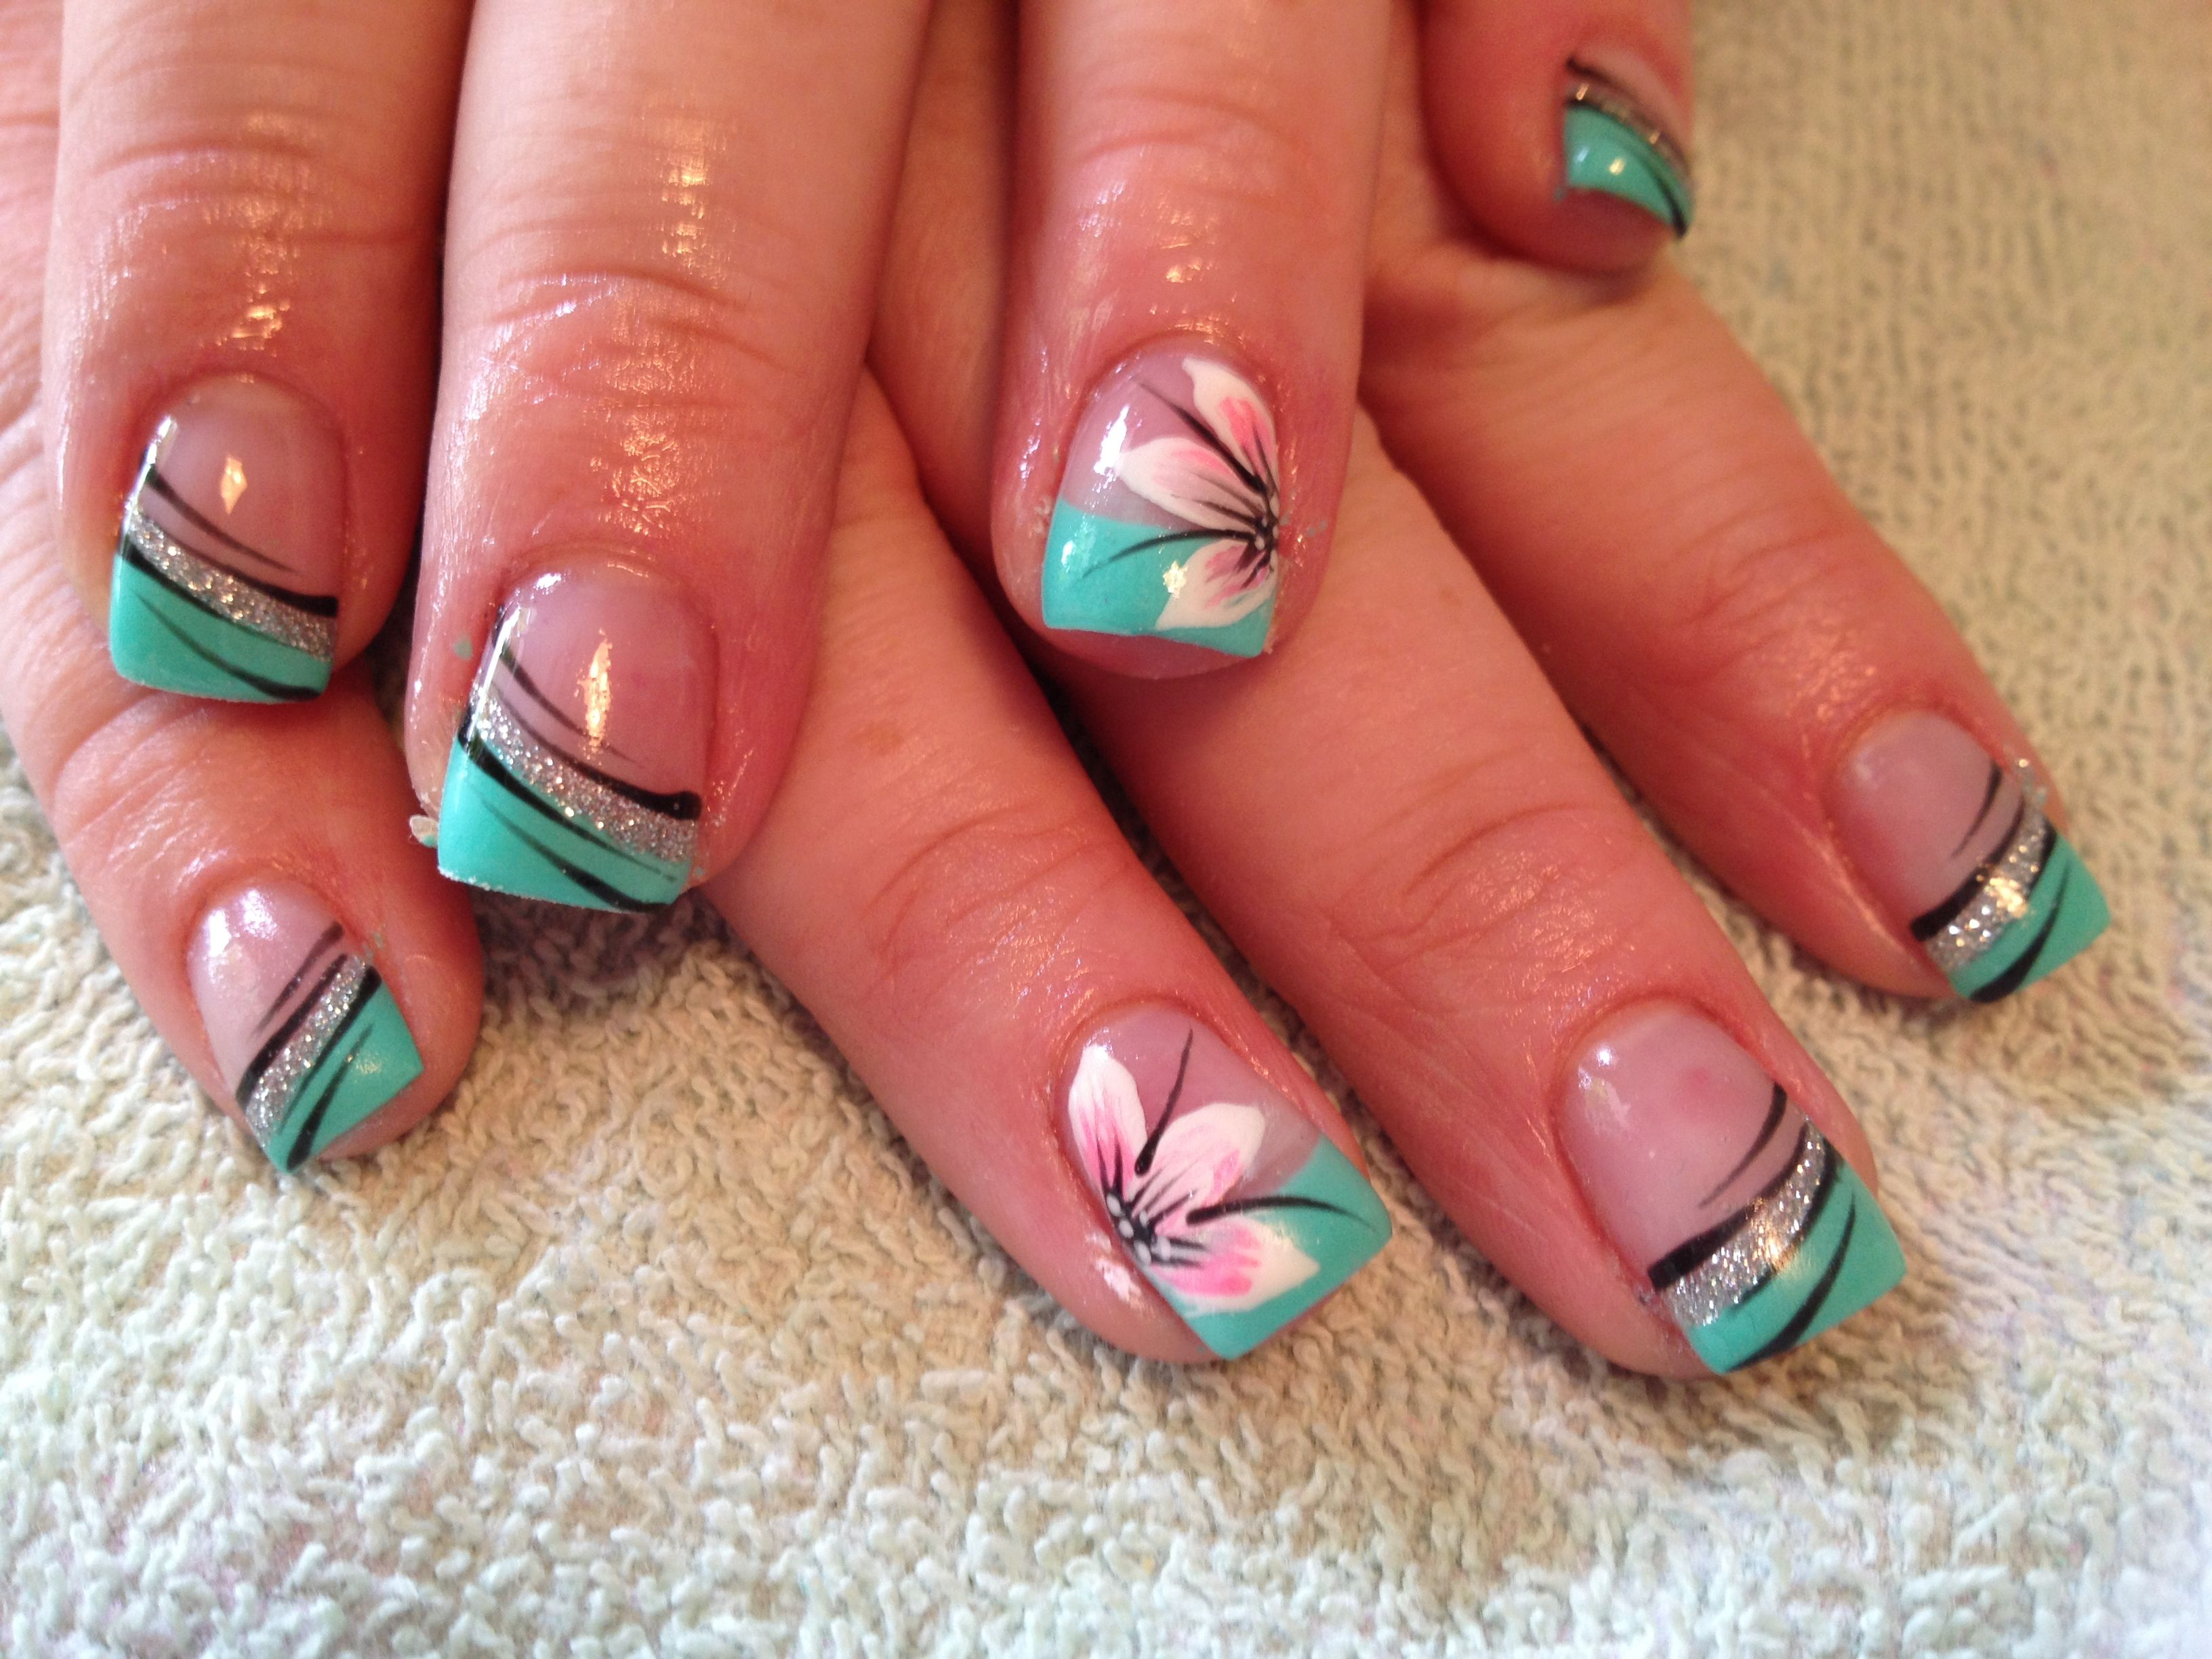 Turquoise Nails With Flowers Turquoise Nails Nail Tip Designs Spring Nail Art